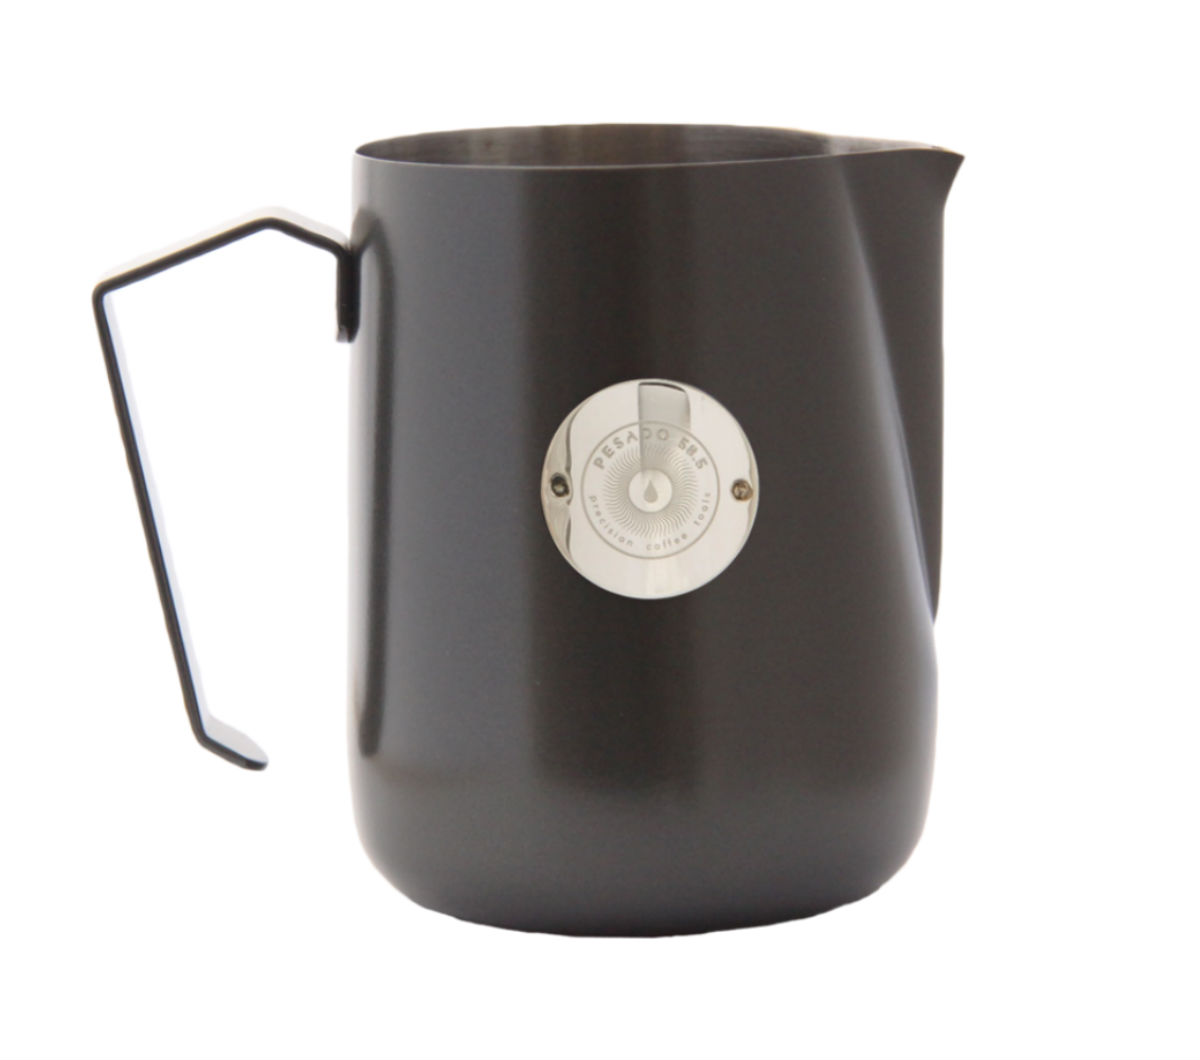 PESADO Milk Pitcher - Charcoal